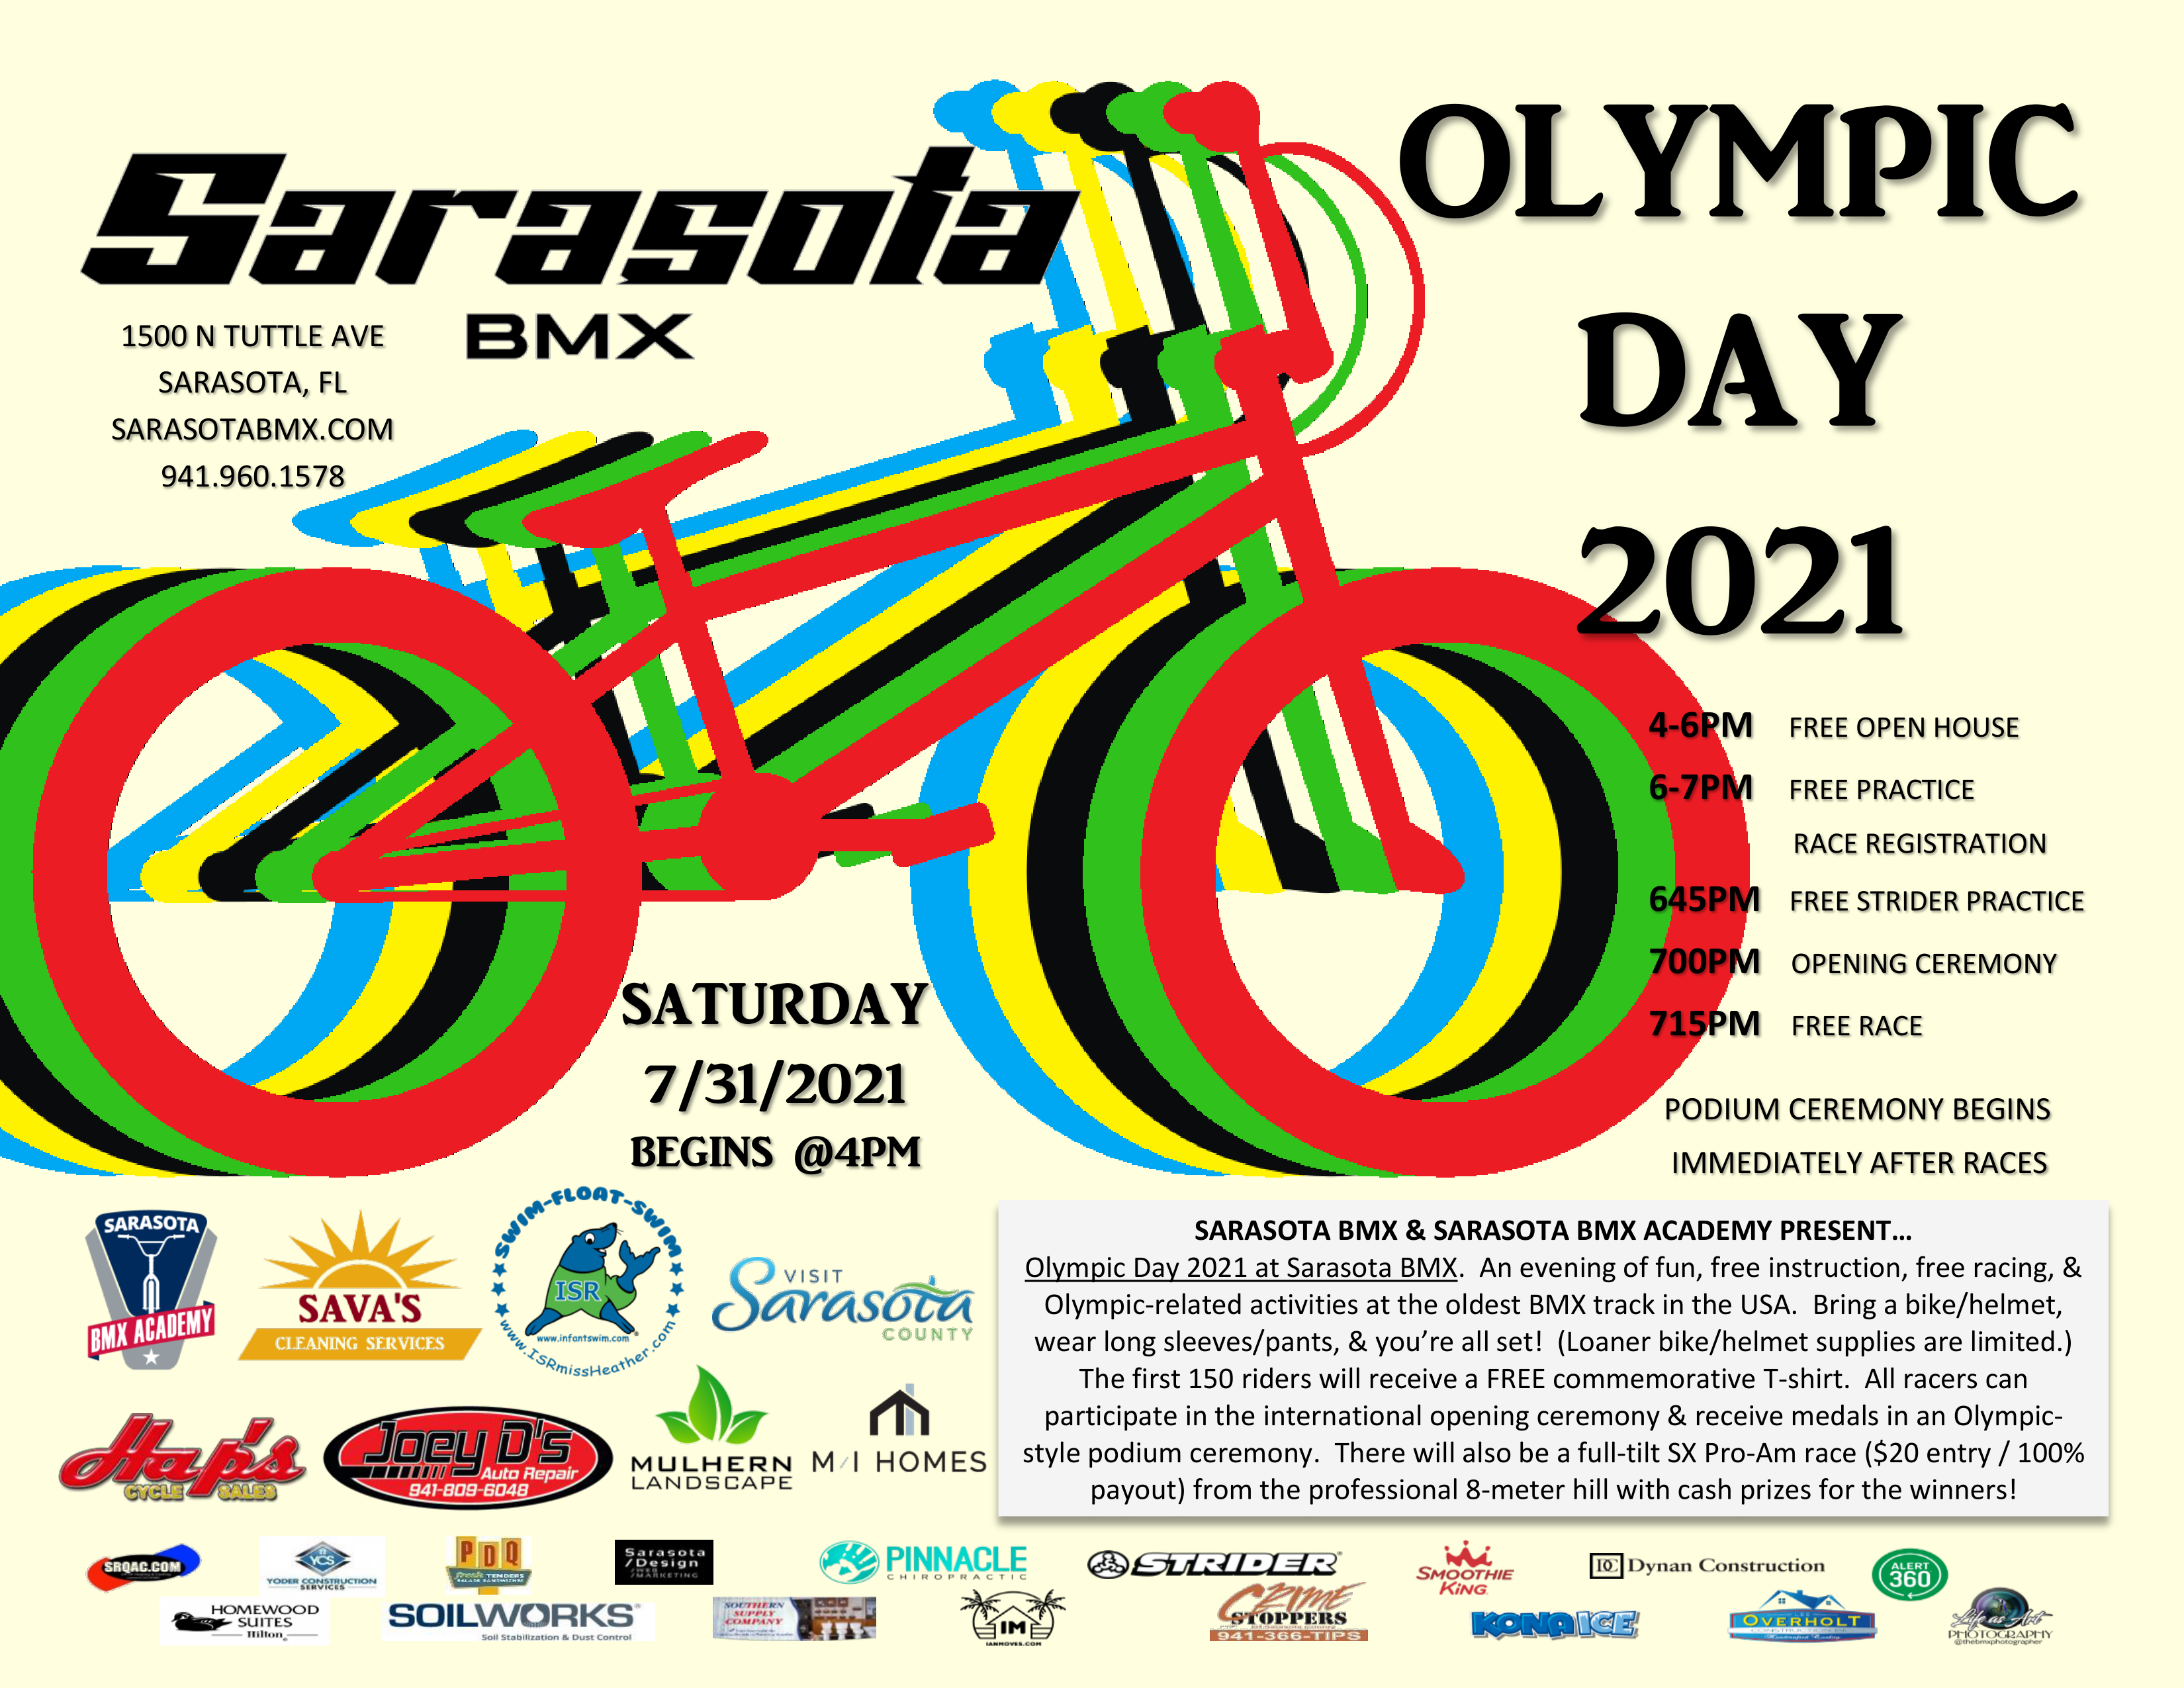 Olympic Day 2021